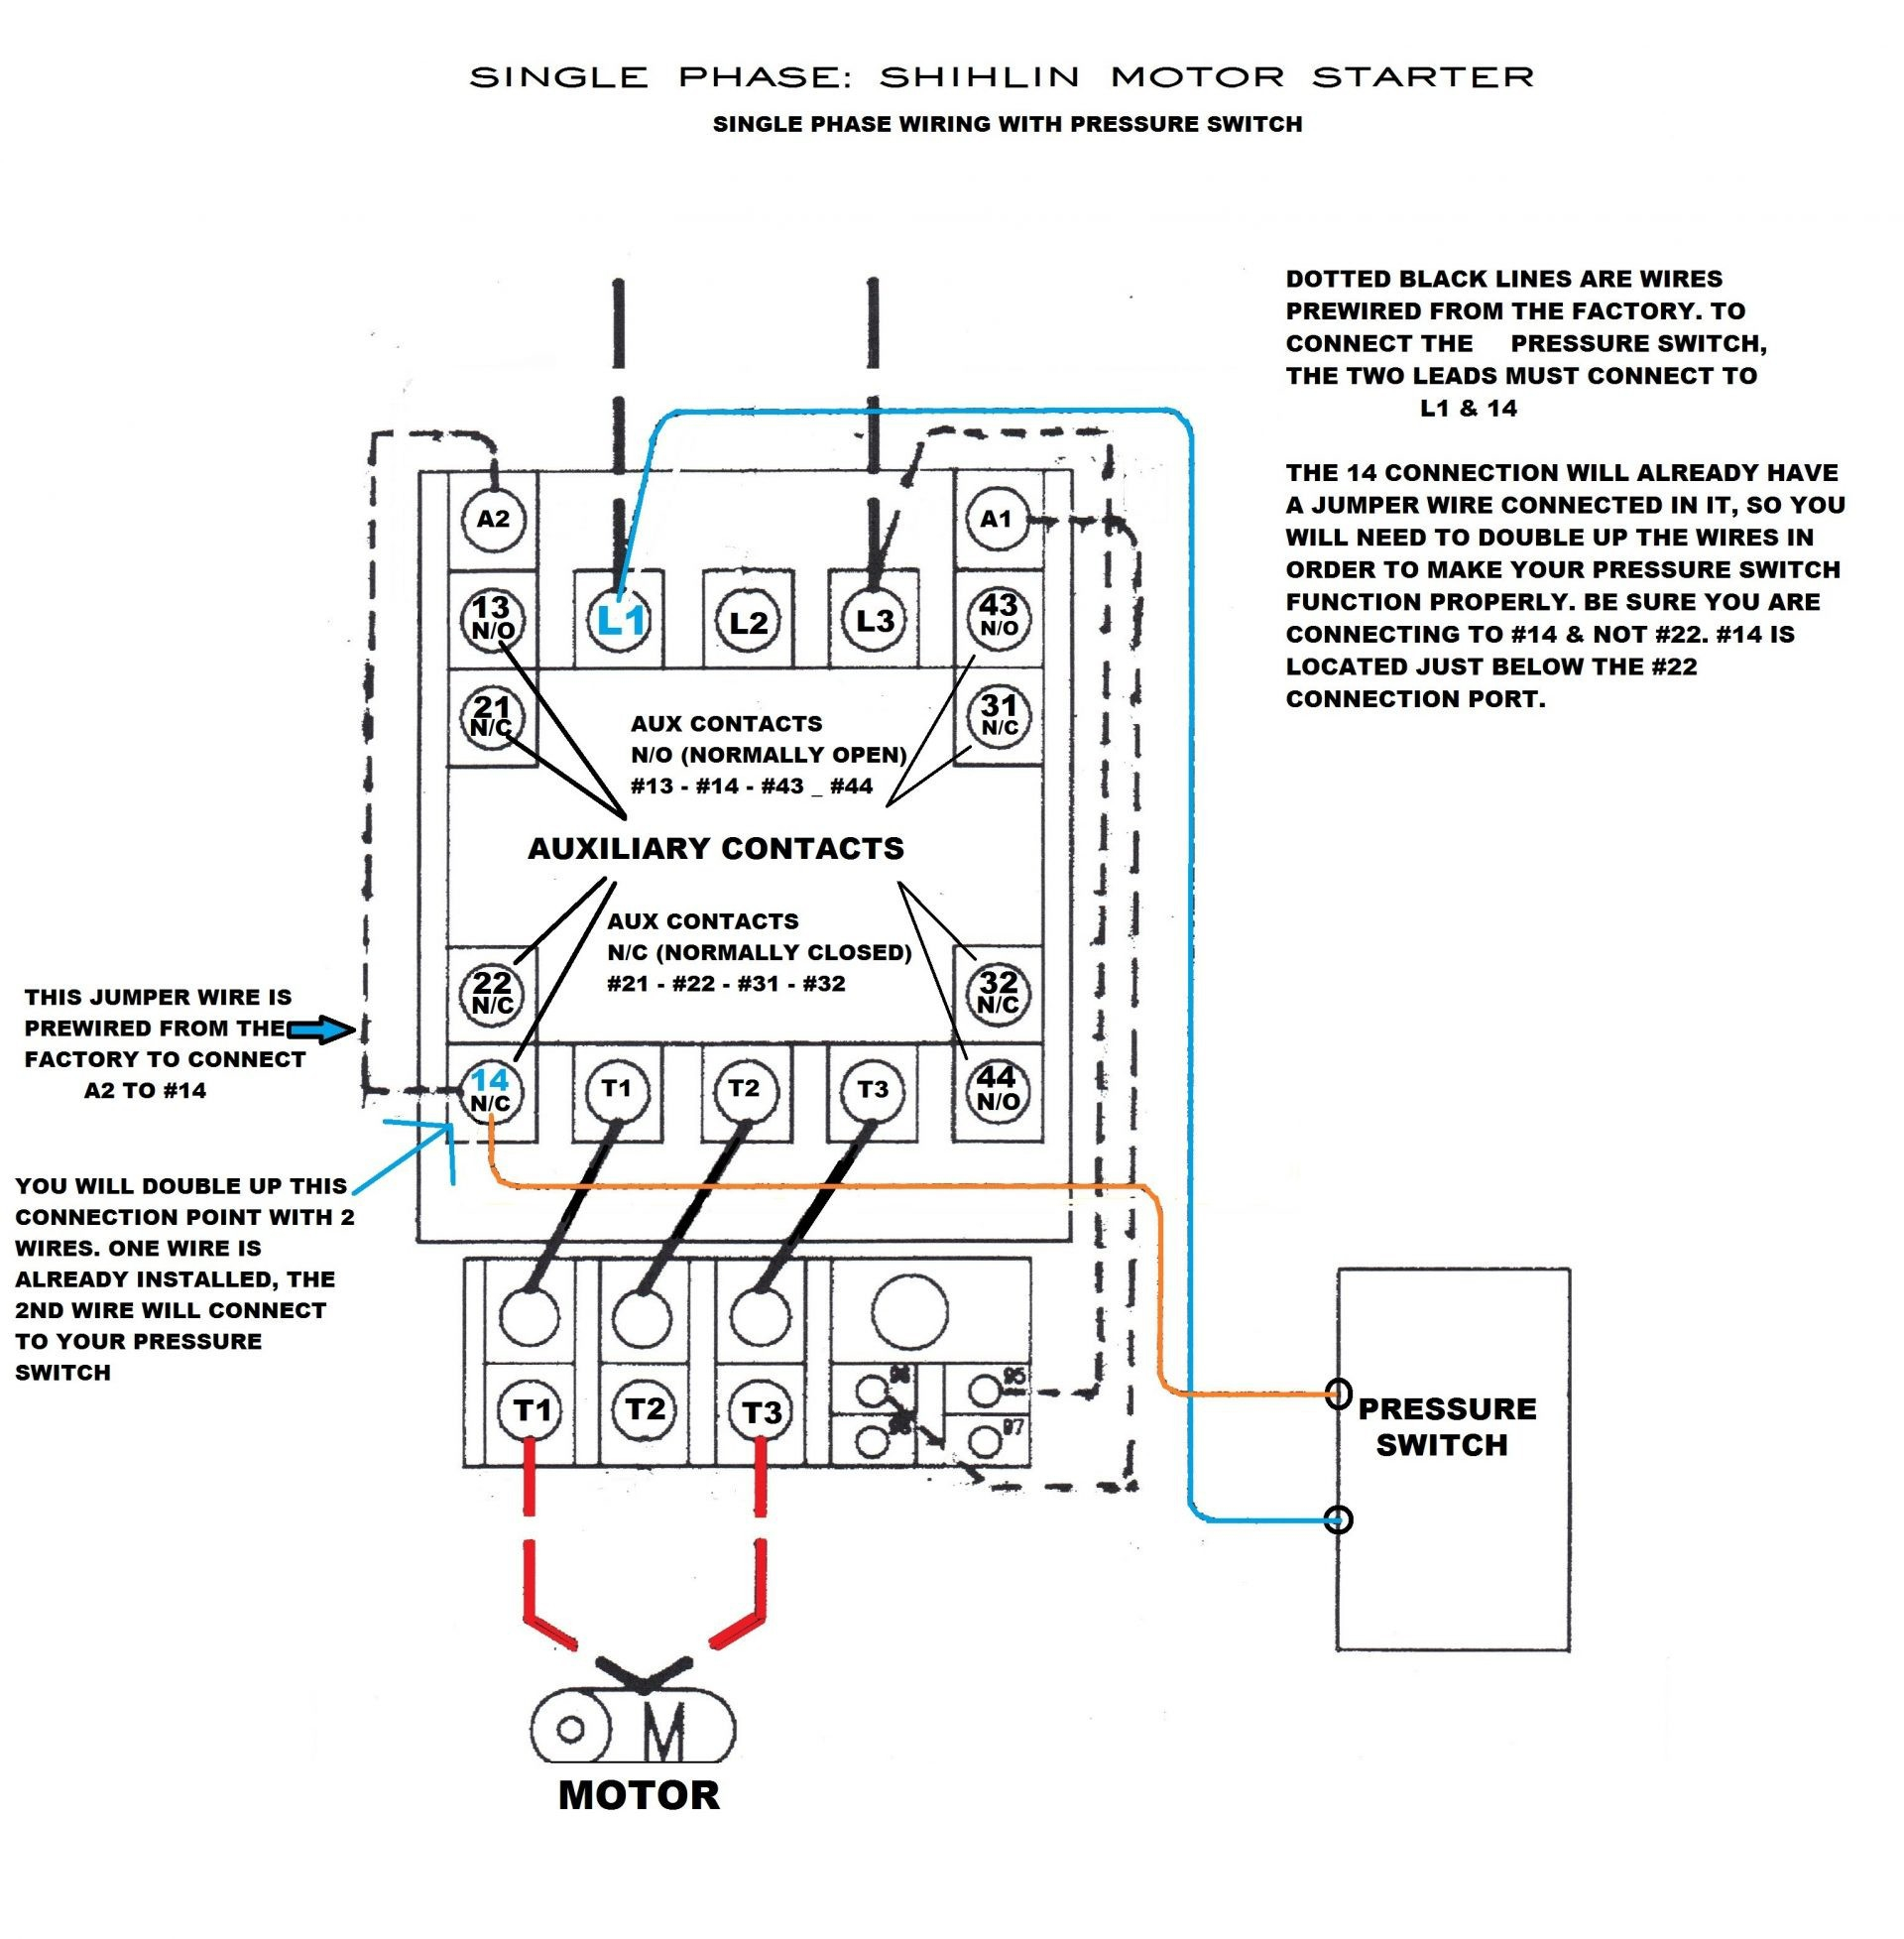 eaton motor starter wiring diagram sample wiring diagram sample rh faceitsalon com eaton wiring manual 2016 wiring manual 2011 eaton